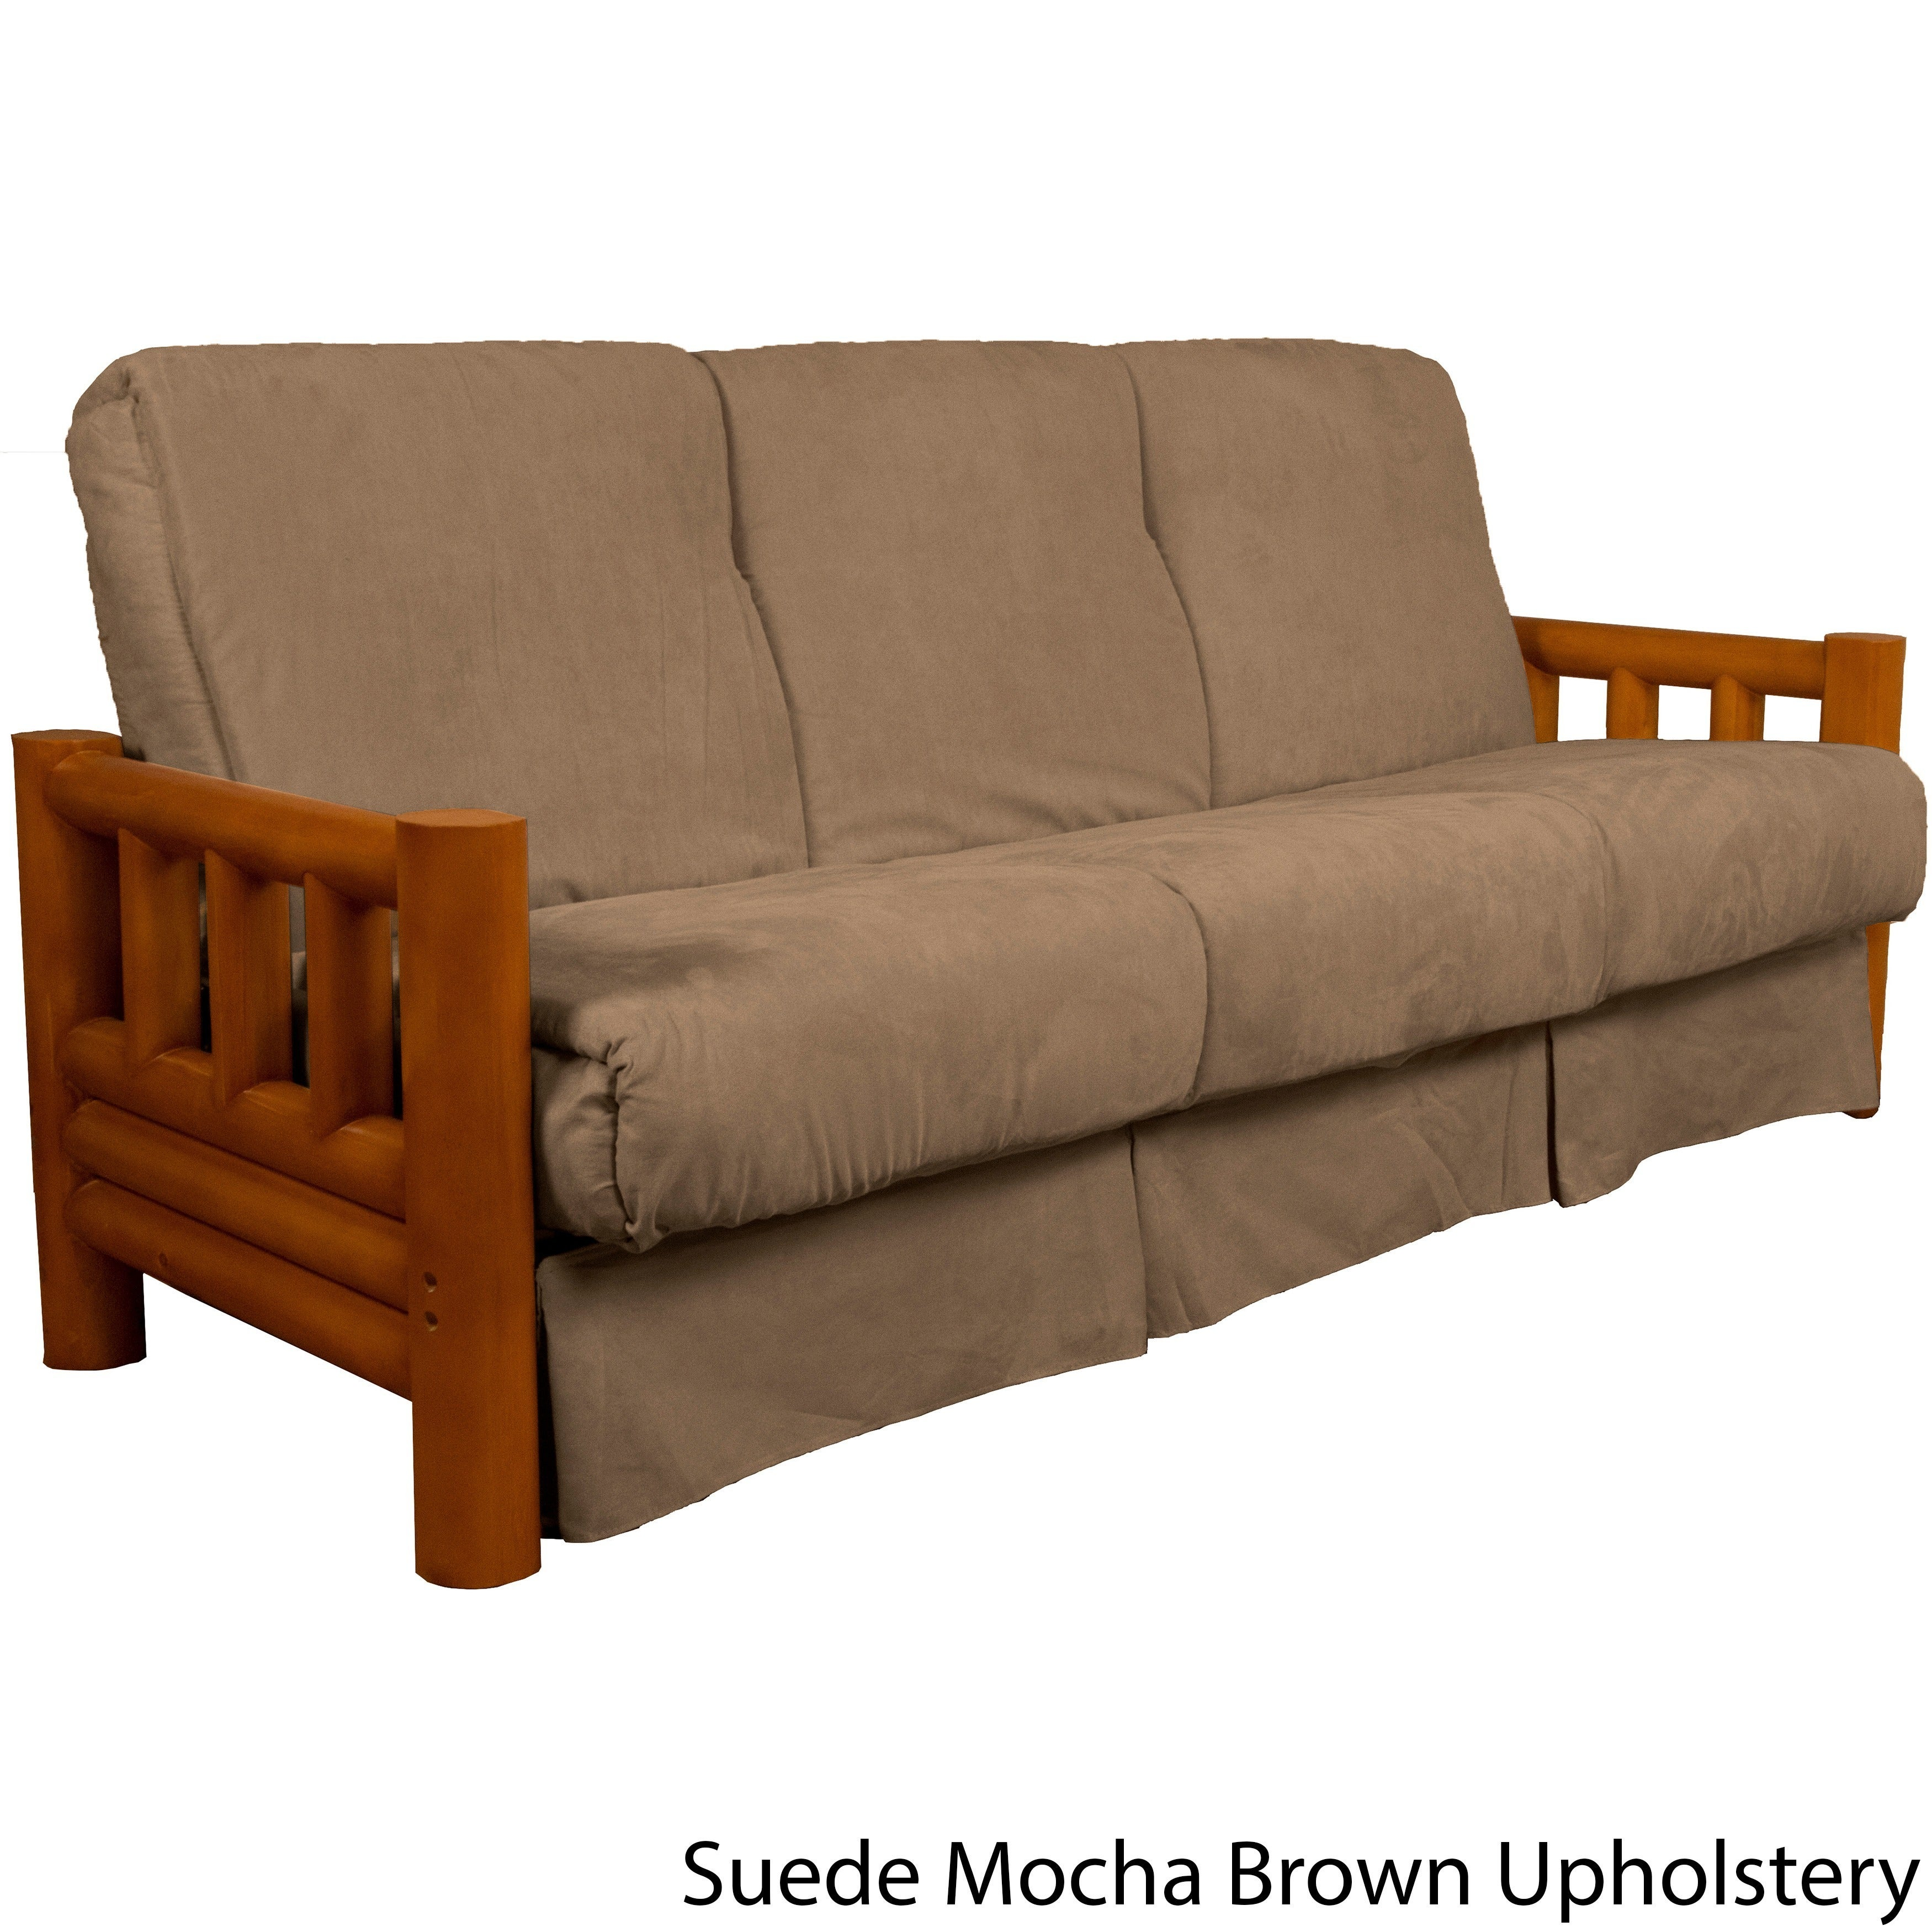 Pine Canopy Tuskegee Lodge Style Pillow Top Sofa